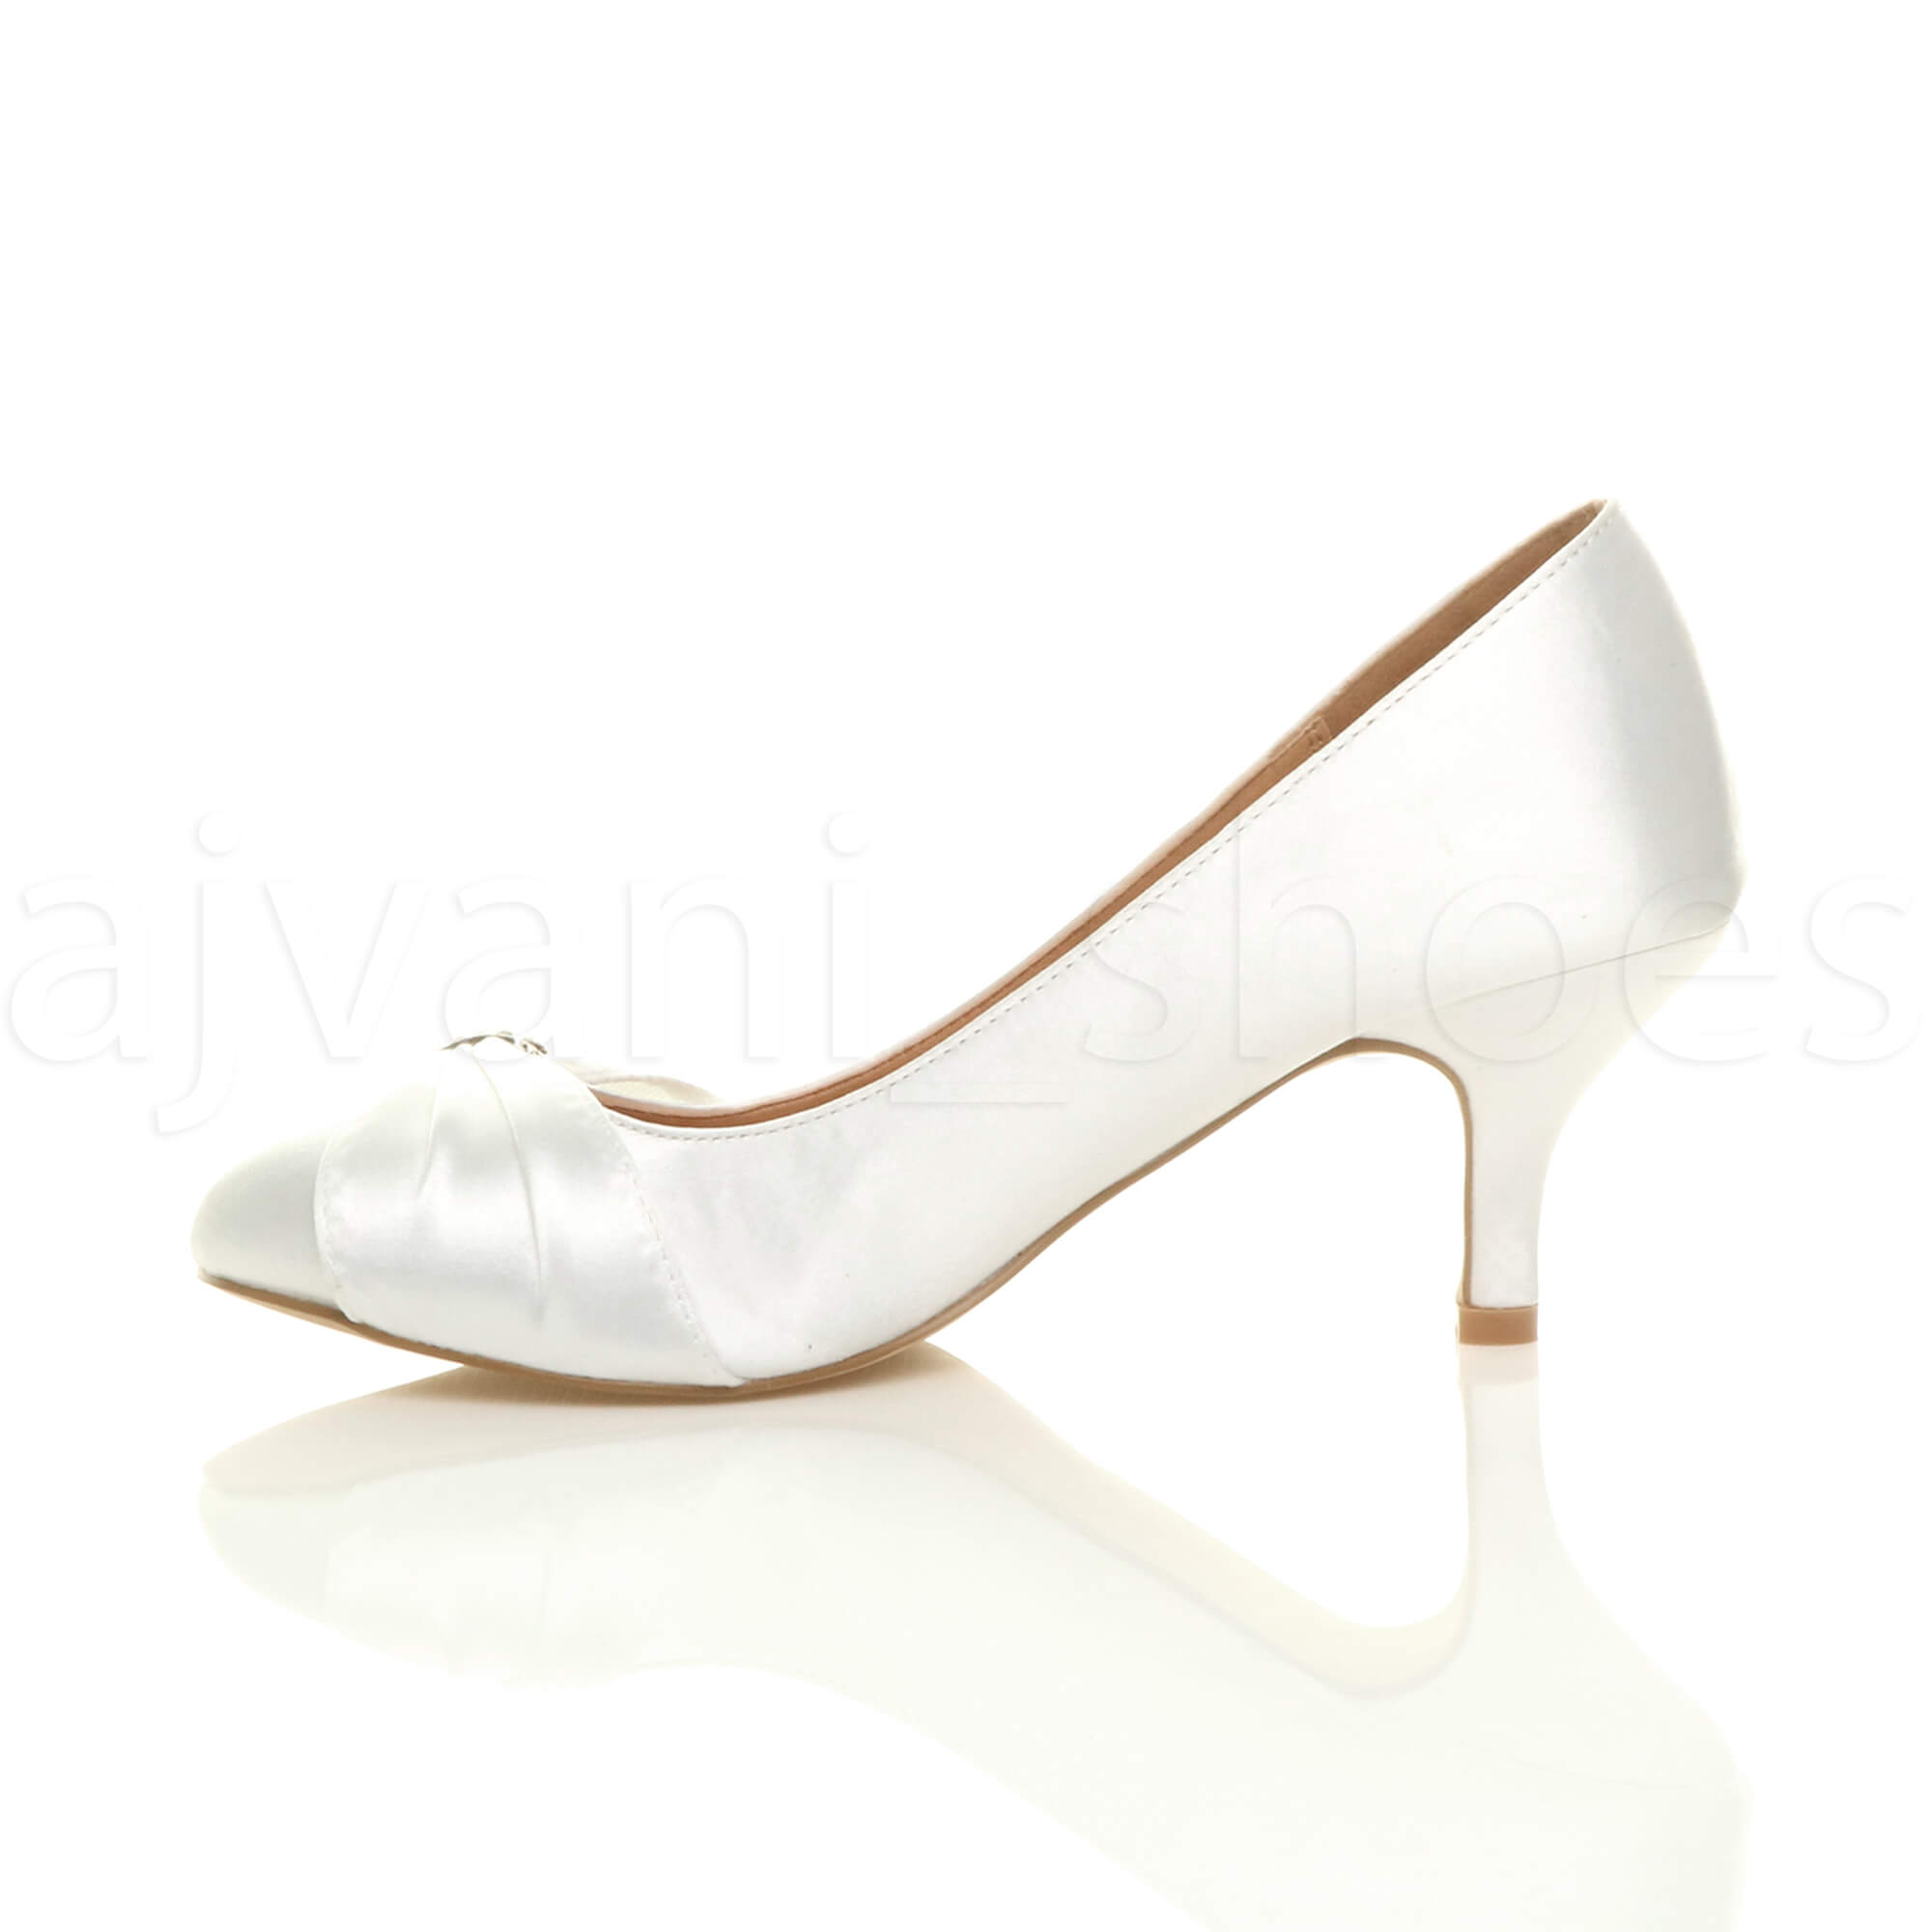 WOMENS-LADIES-MID-HEEL-RUCHED-DIAMANTE-WEDDING-PROM-EVENING-COURT-SHOES-SIZE thumbnail 108